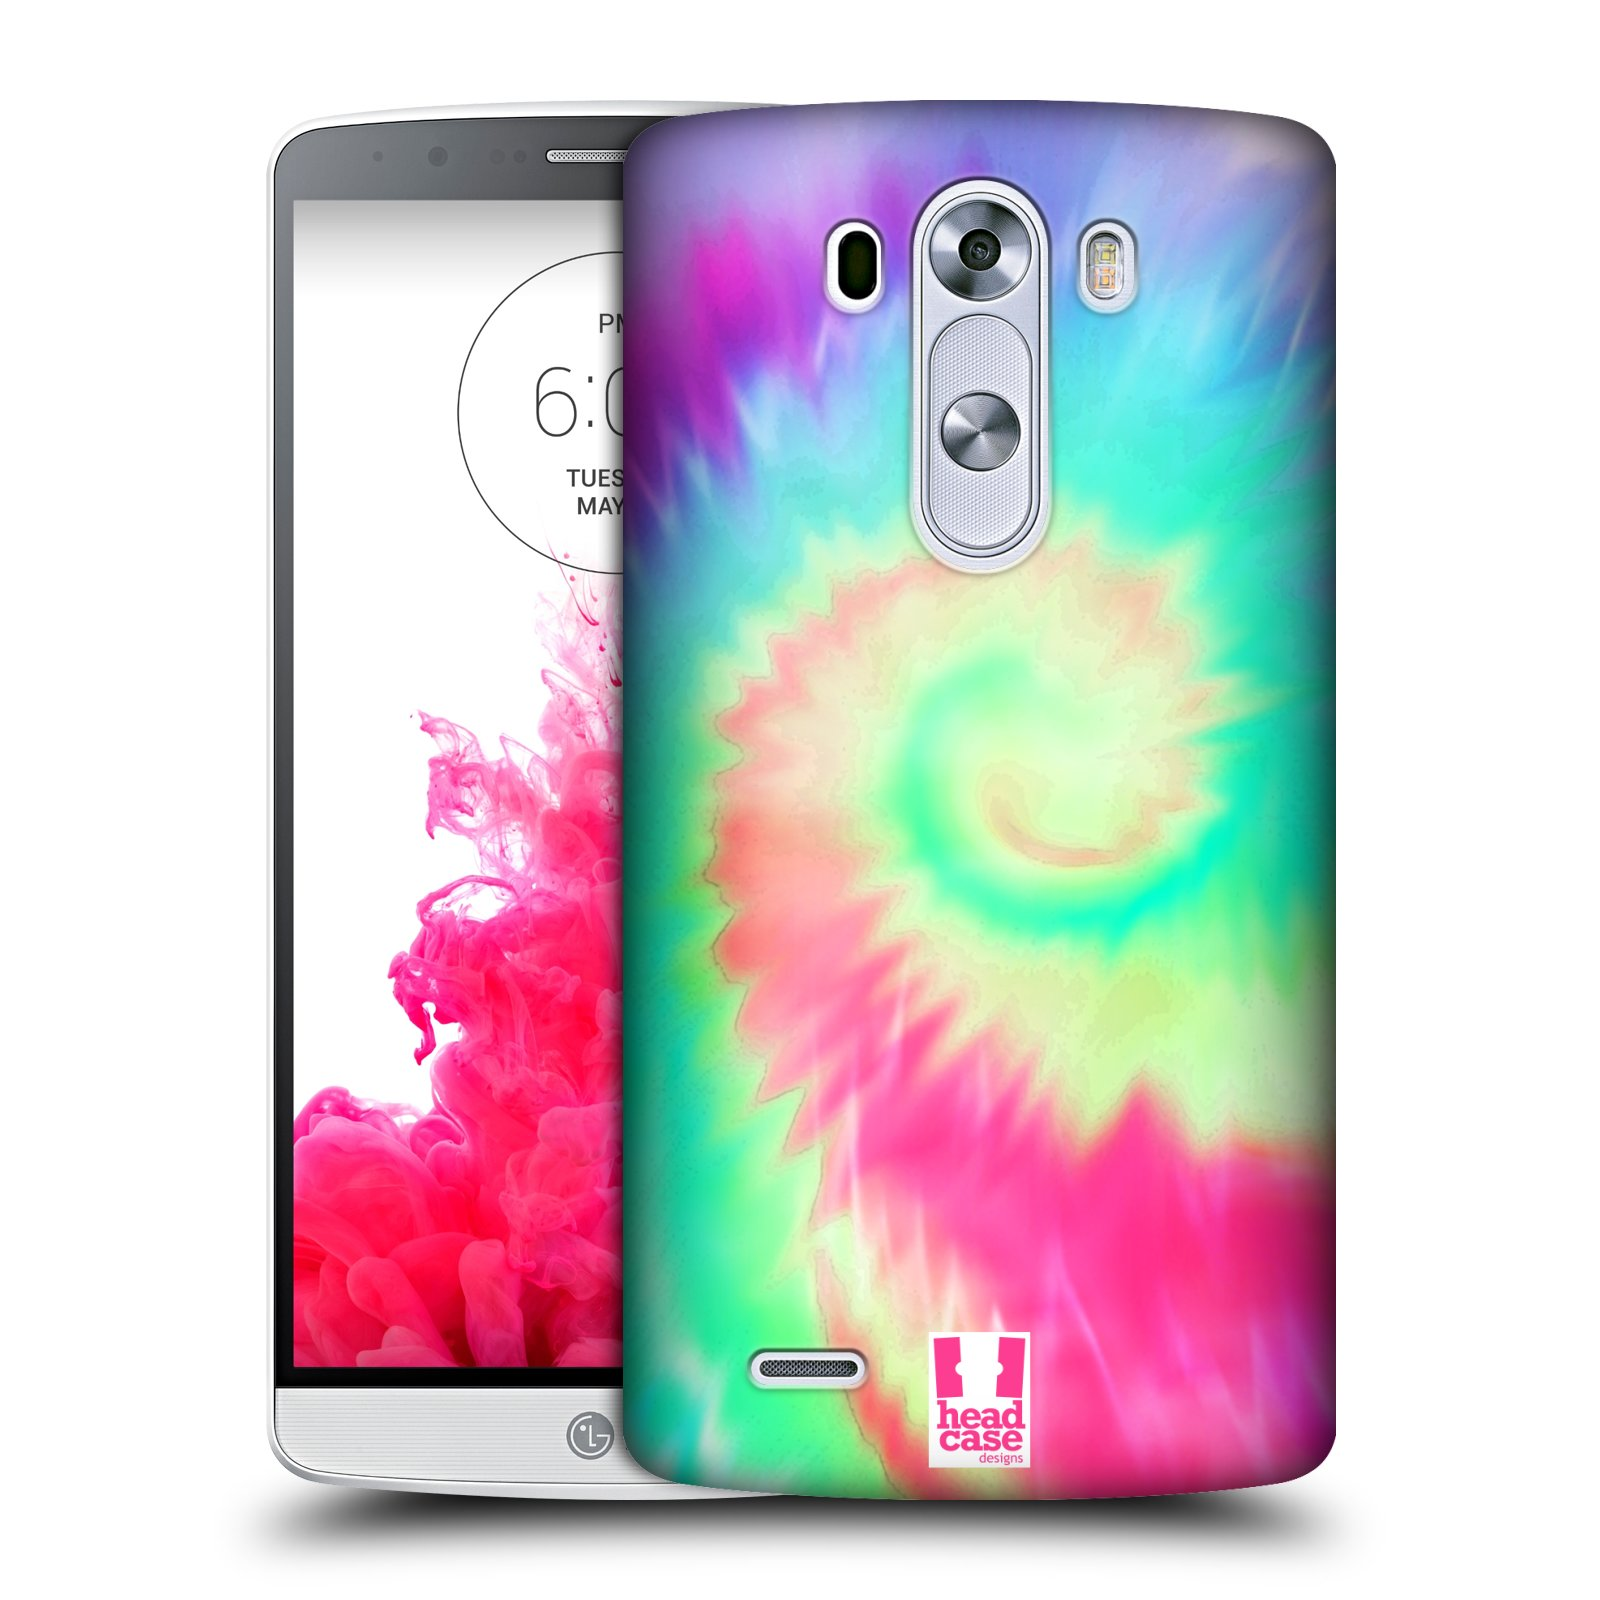 HEAD CASE DESIGNS TIE DYED S2 HARD BACK CASE FOR LG PHONES 1